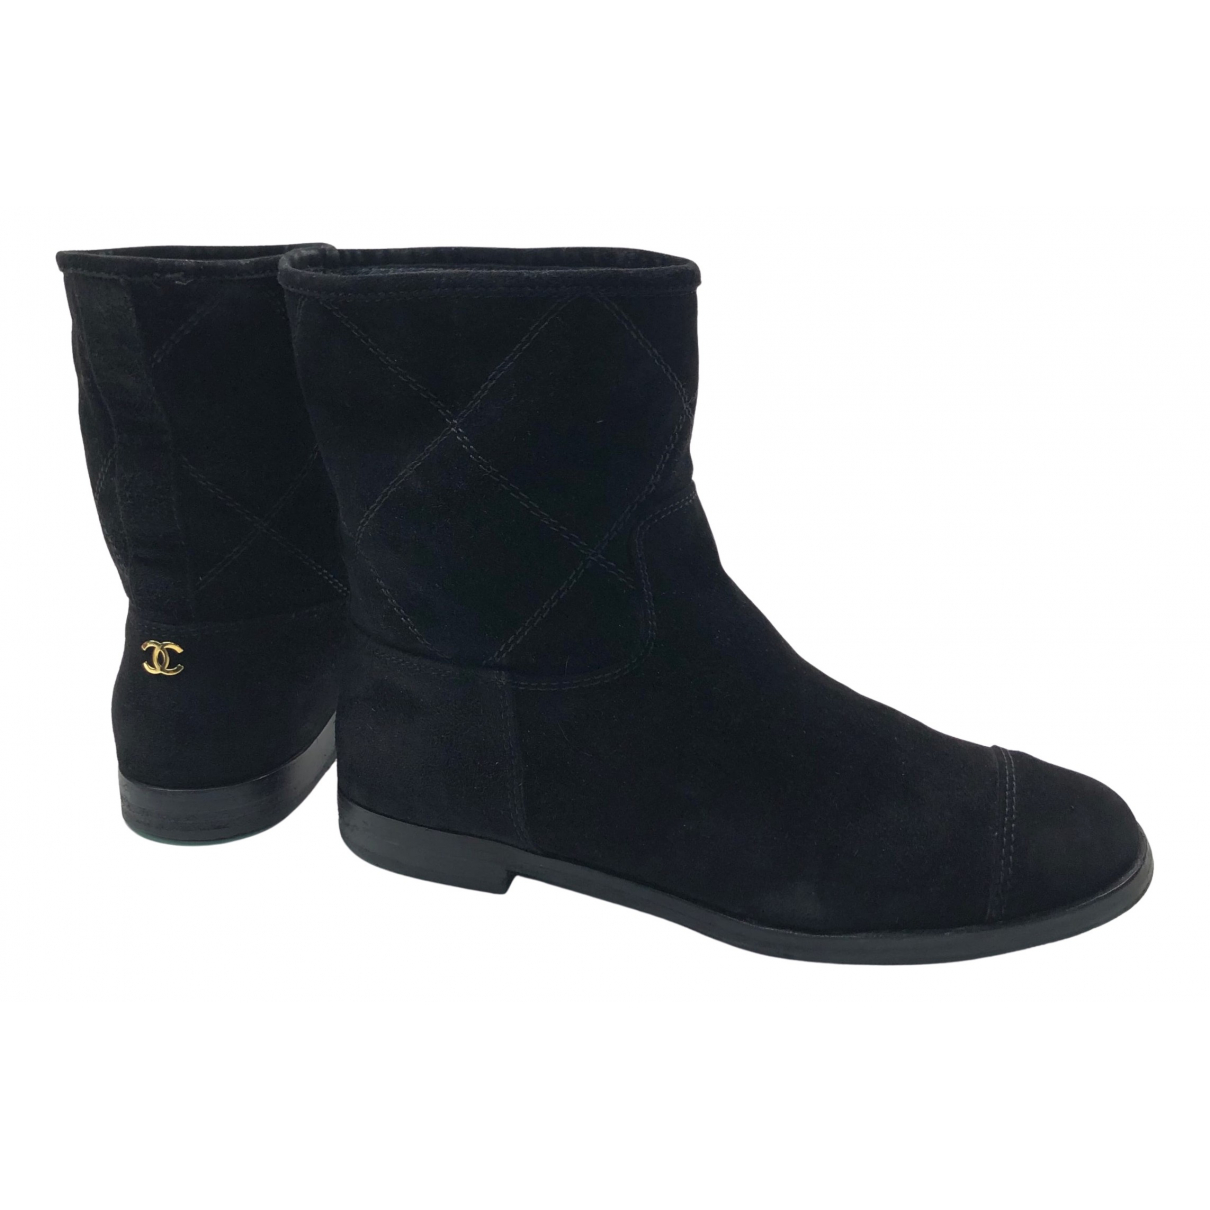 Chanel N Black Suede Ankle boots for Women 37.5 EU